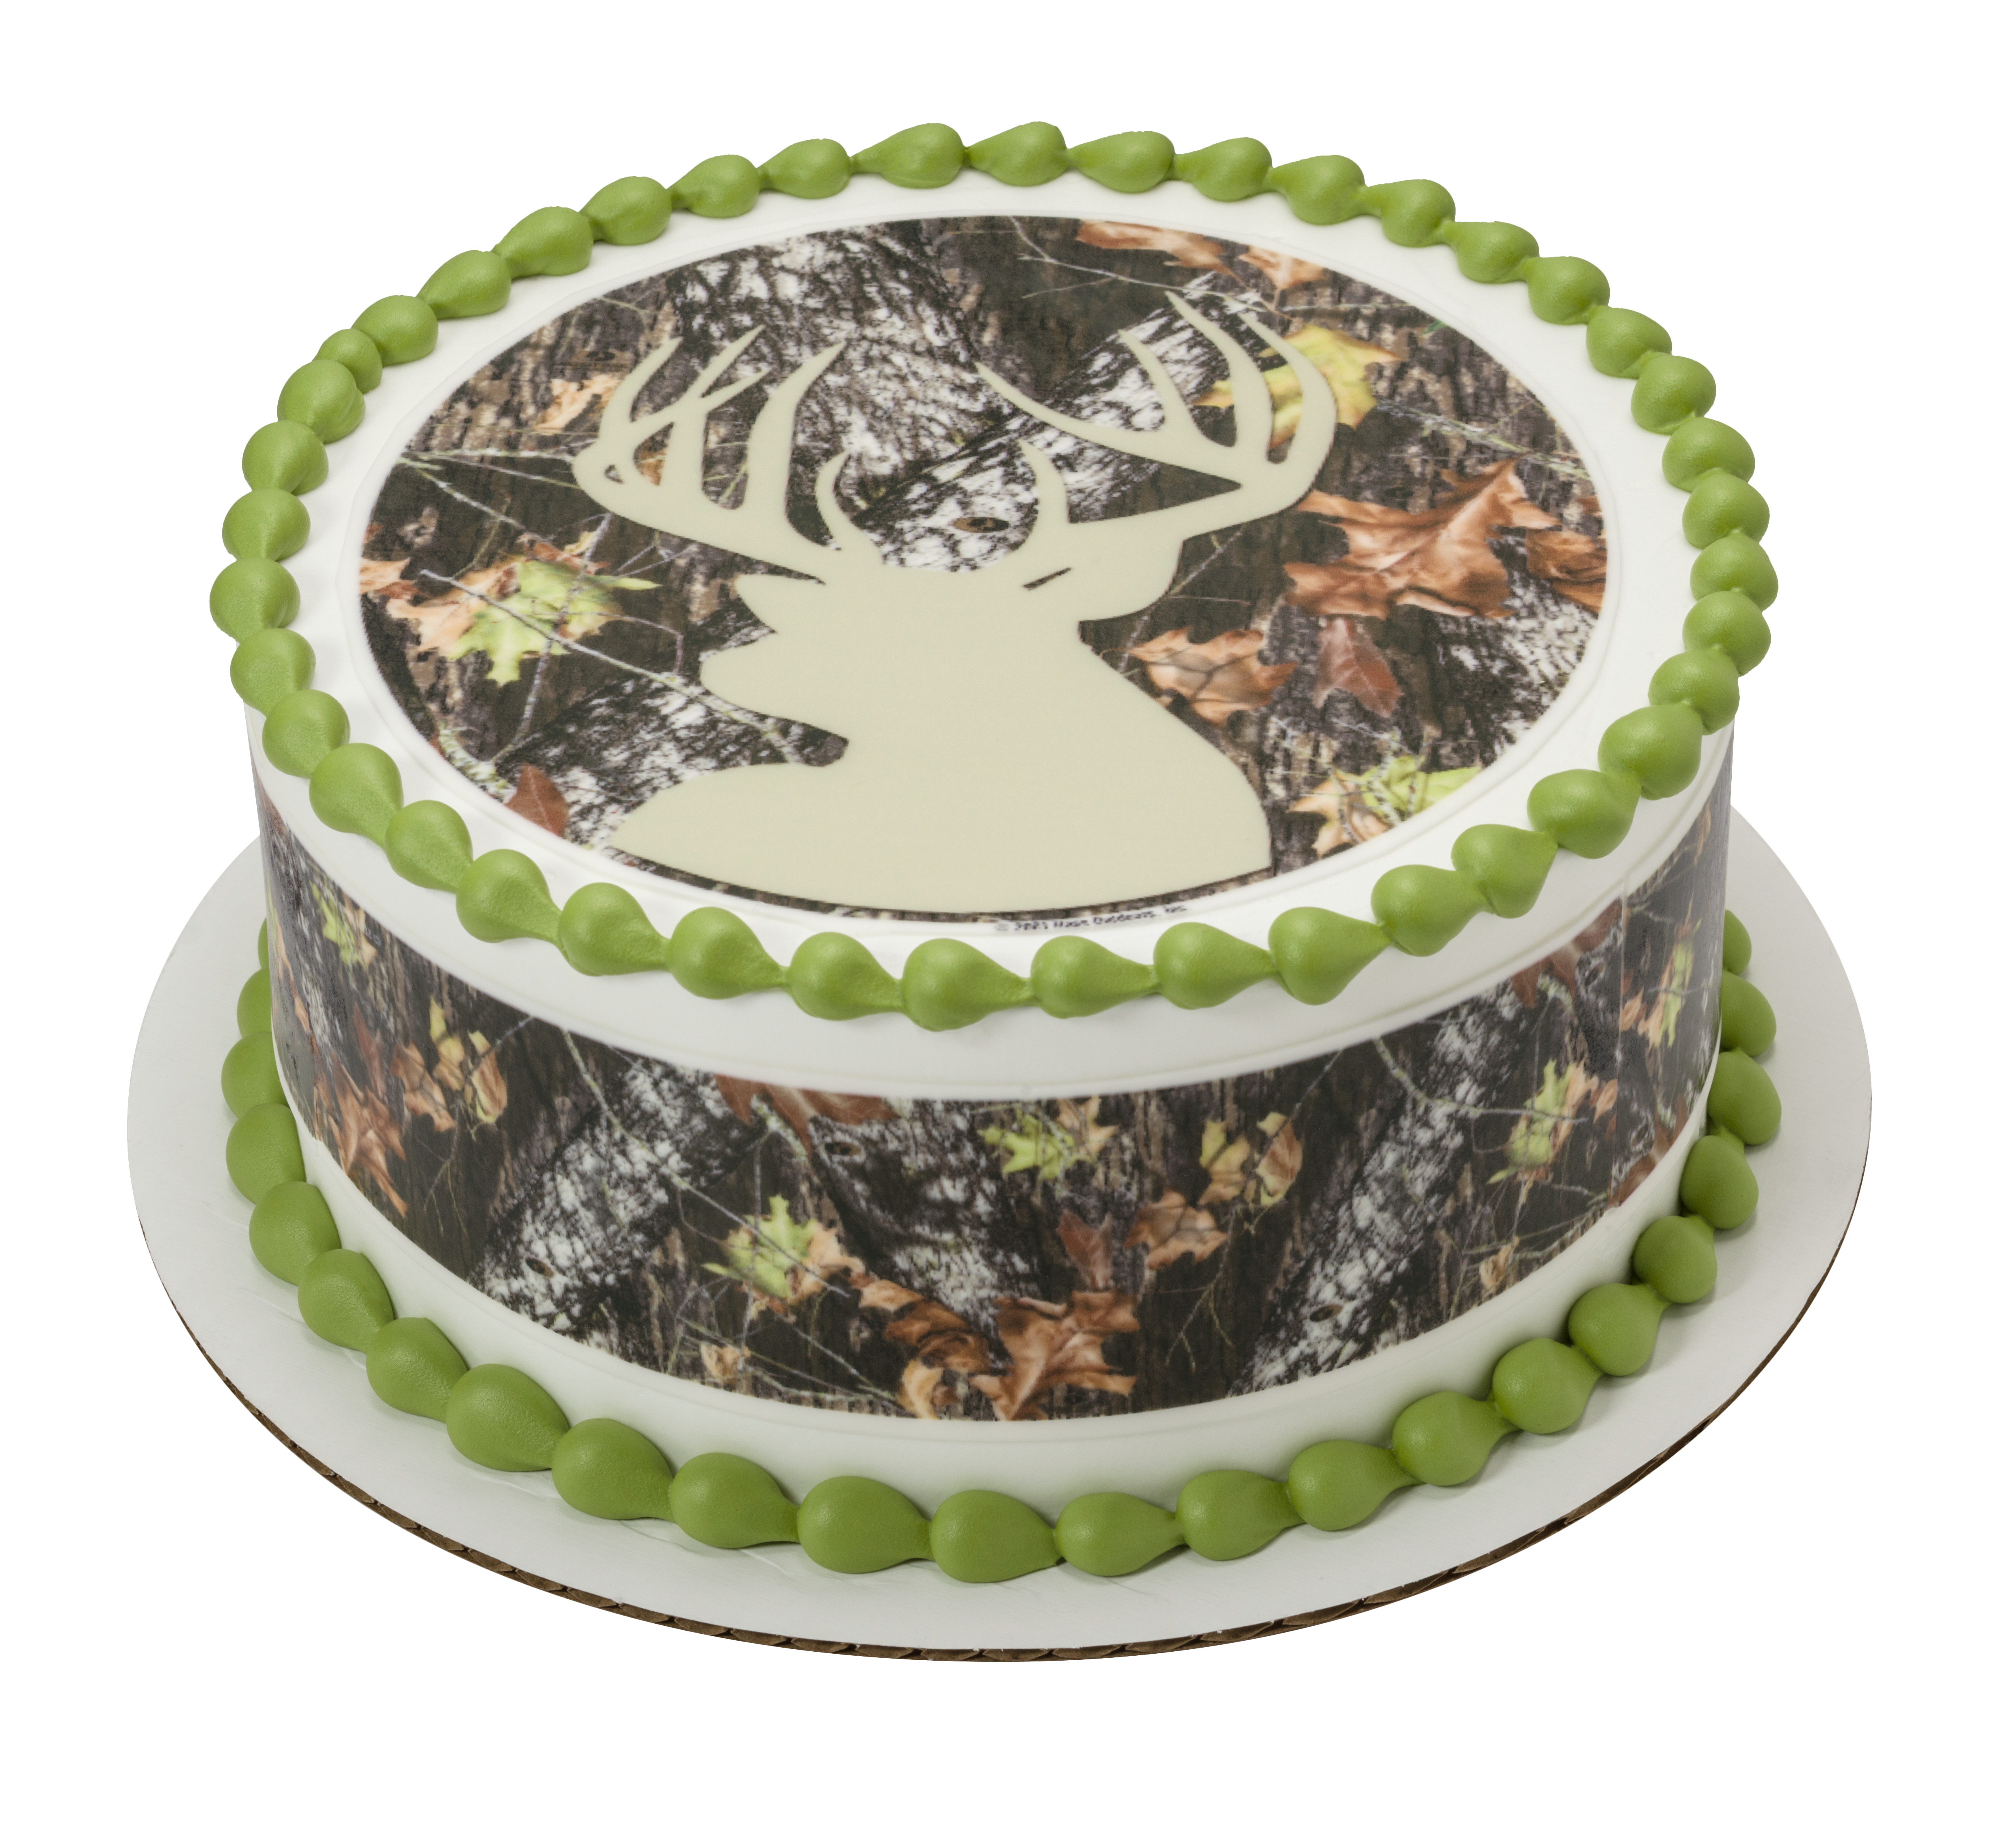 mossy oak wedding cake toppers mossy oak 174 up 174 silhouette photocake 174 image decopac 17539